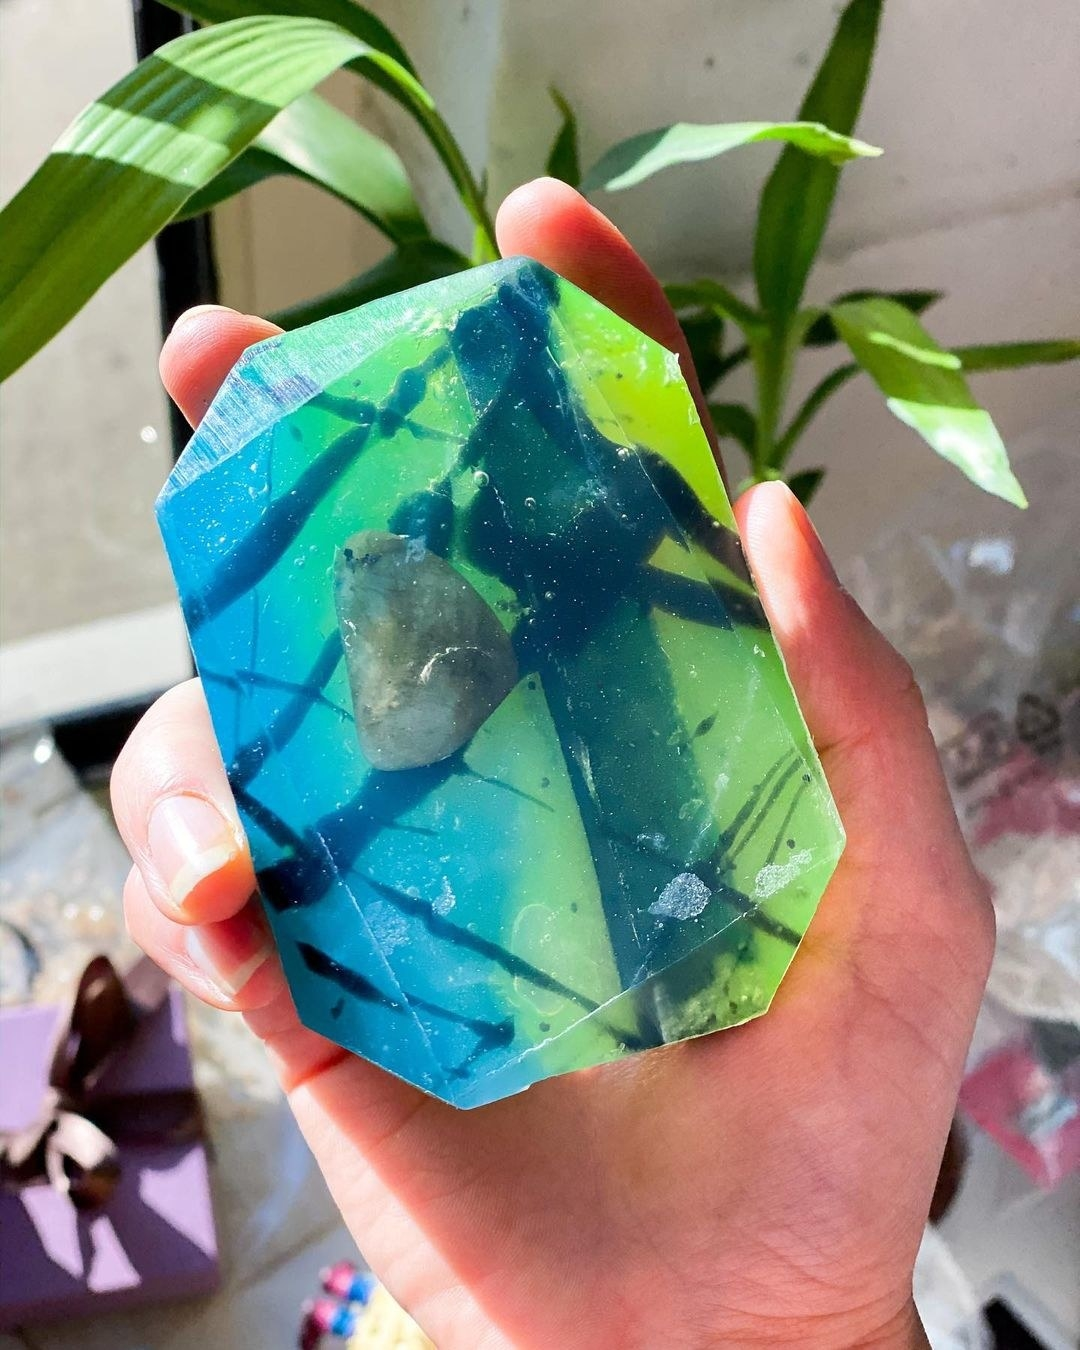 hand holding the palm-sized translucent blue and green bar, with a crystal stone in the center